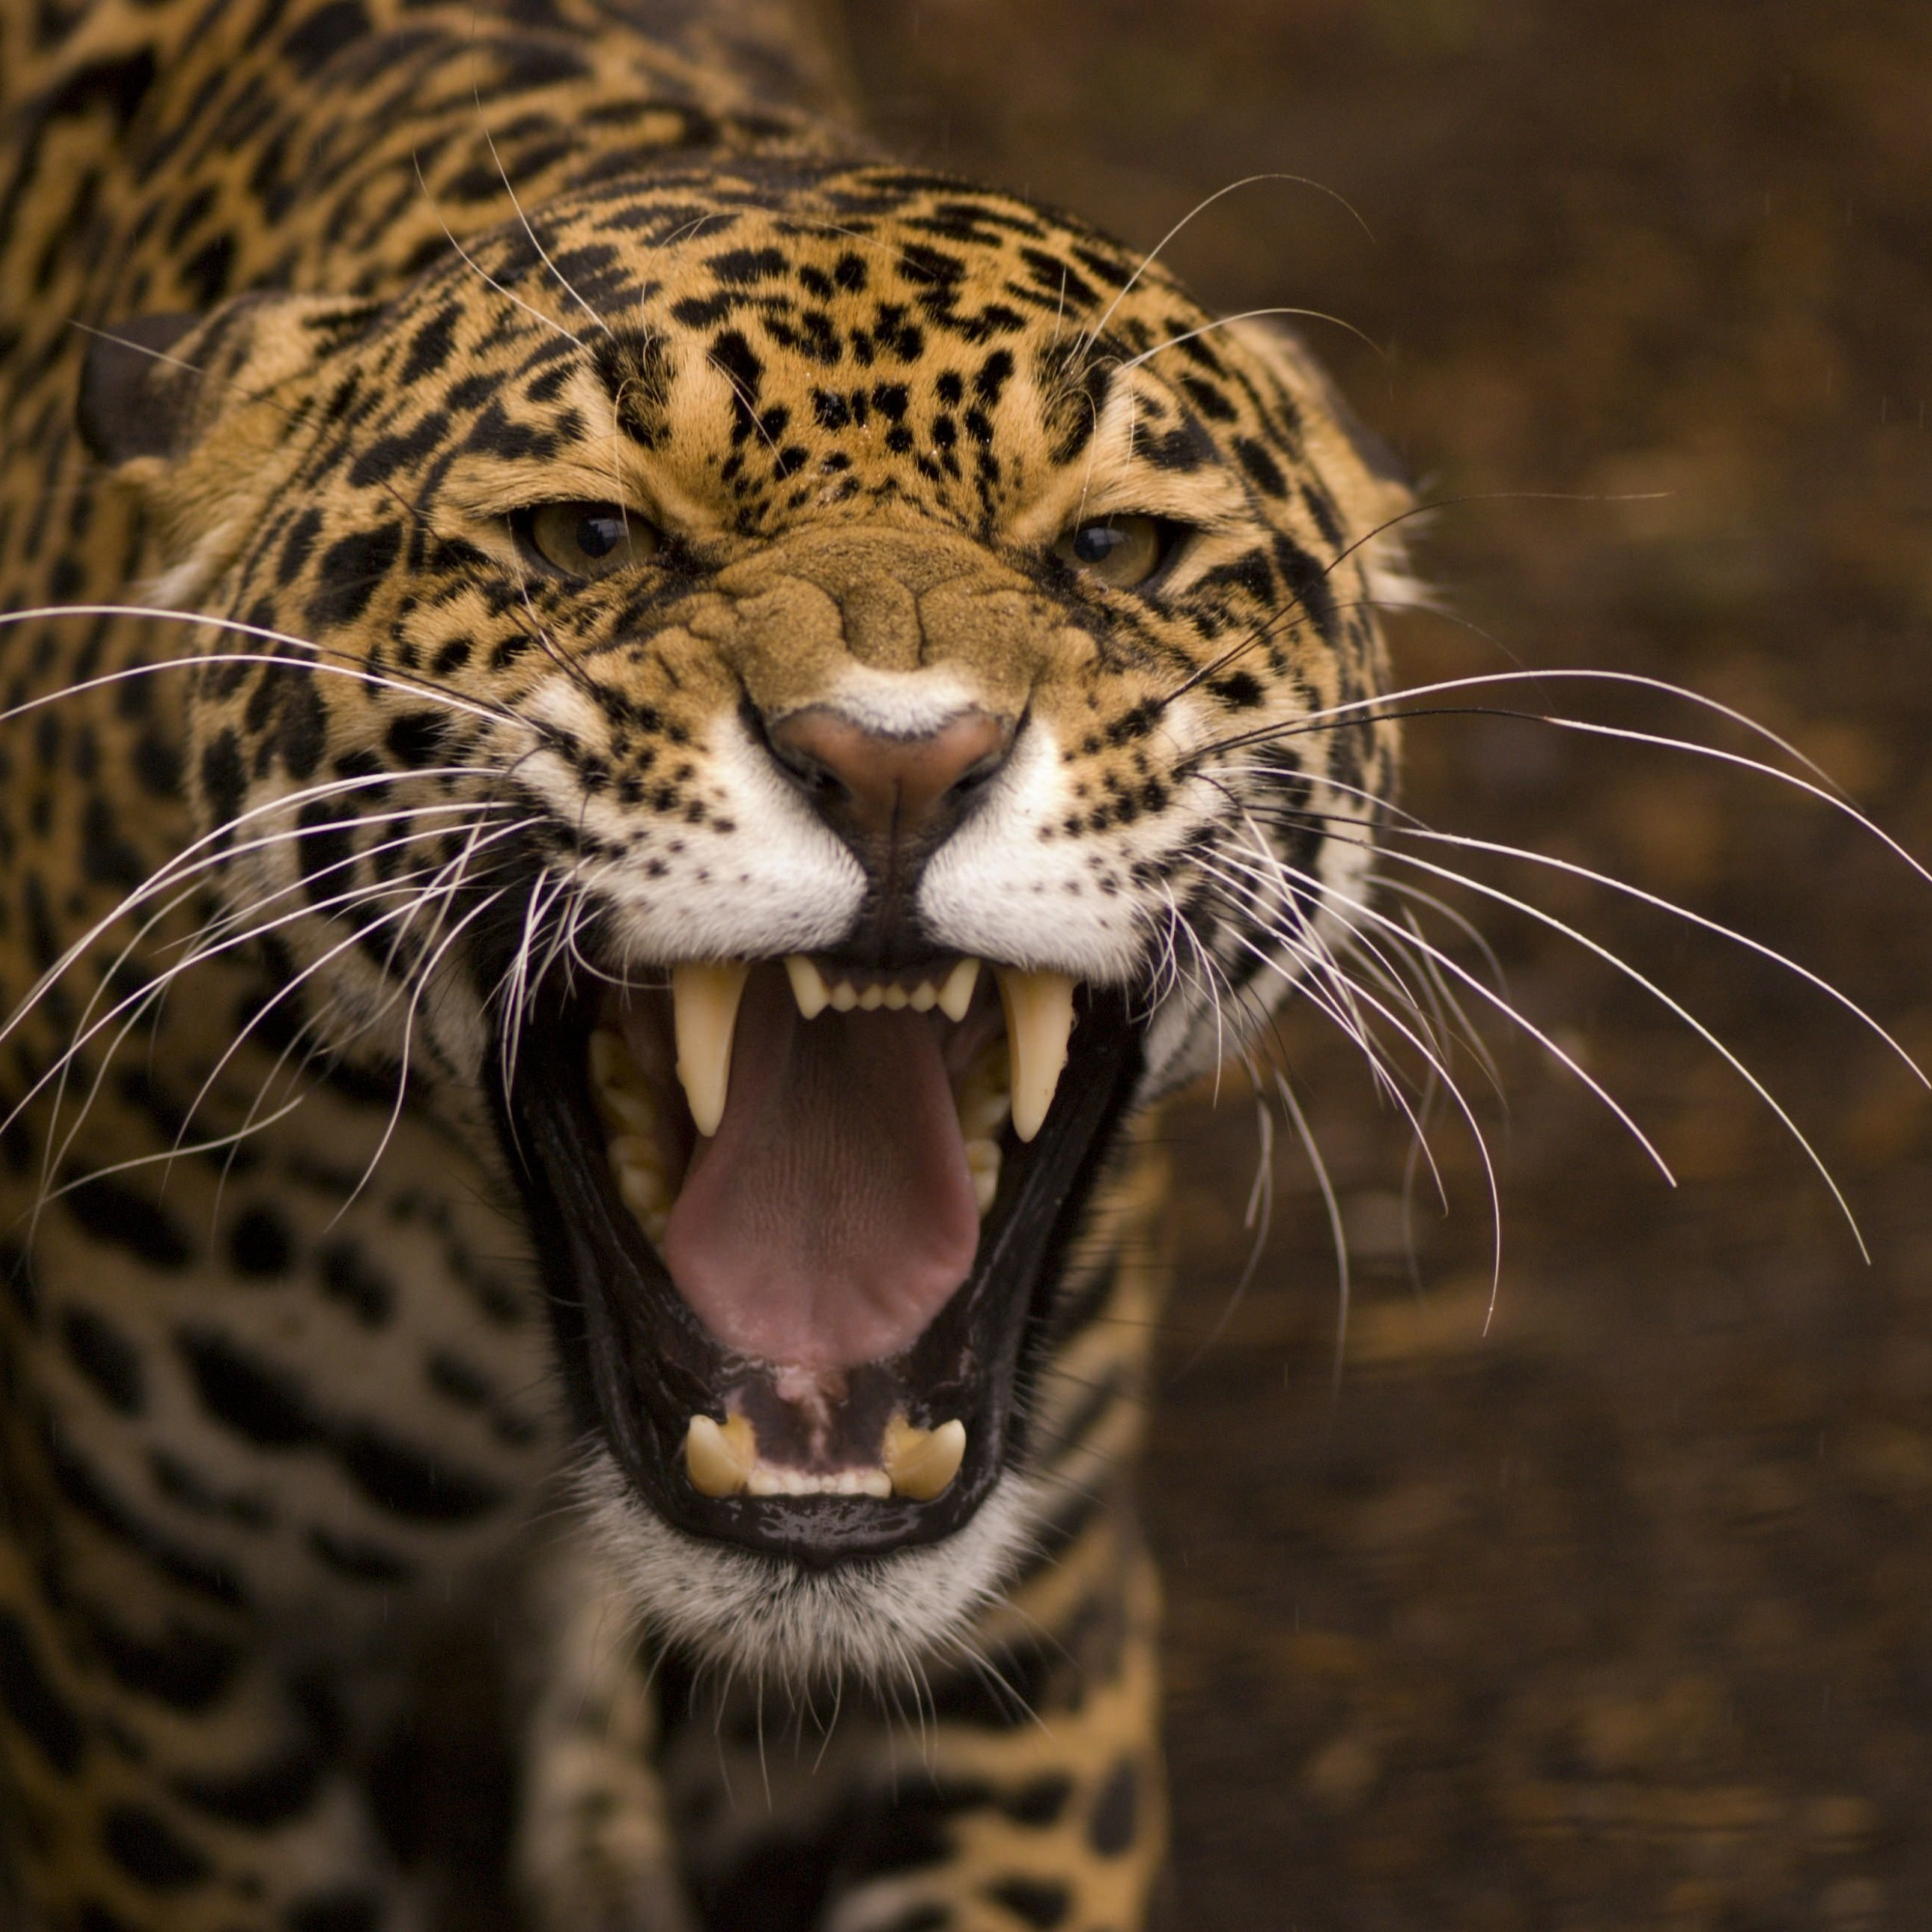 Growling Jaguar Wallpaper for Apple iPad Air